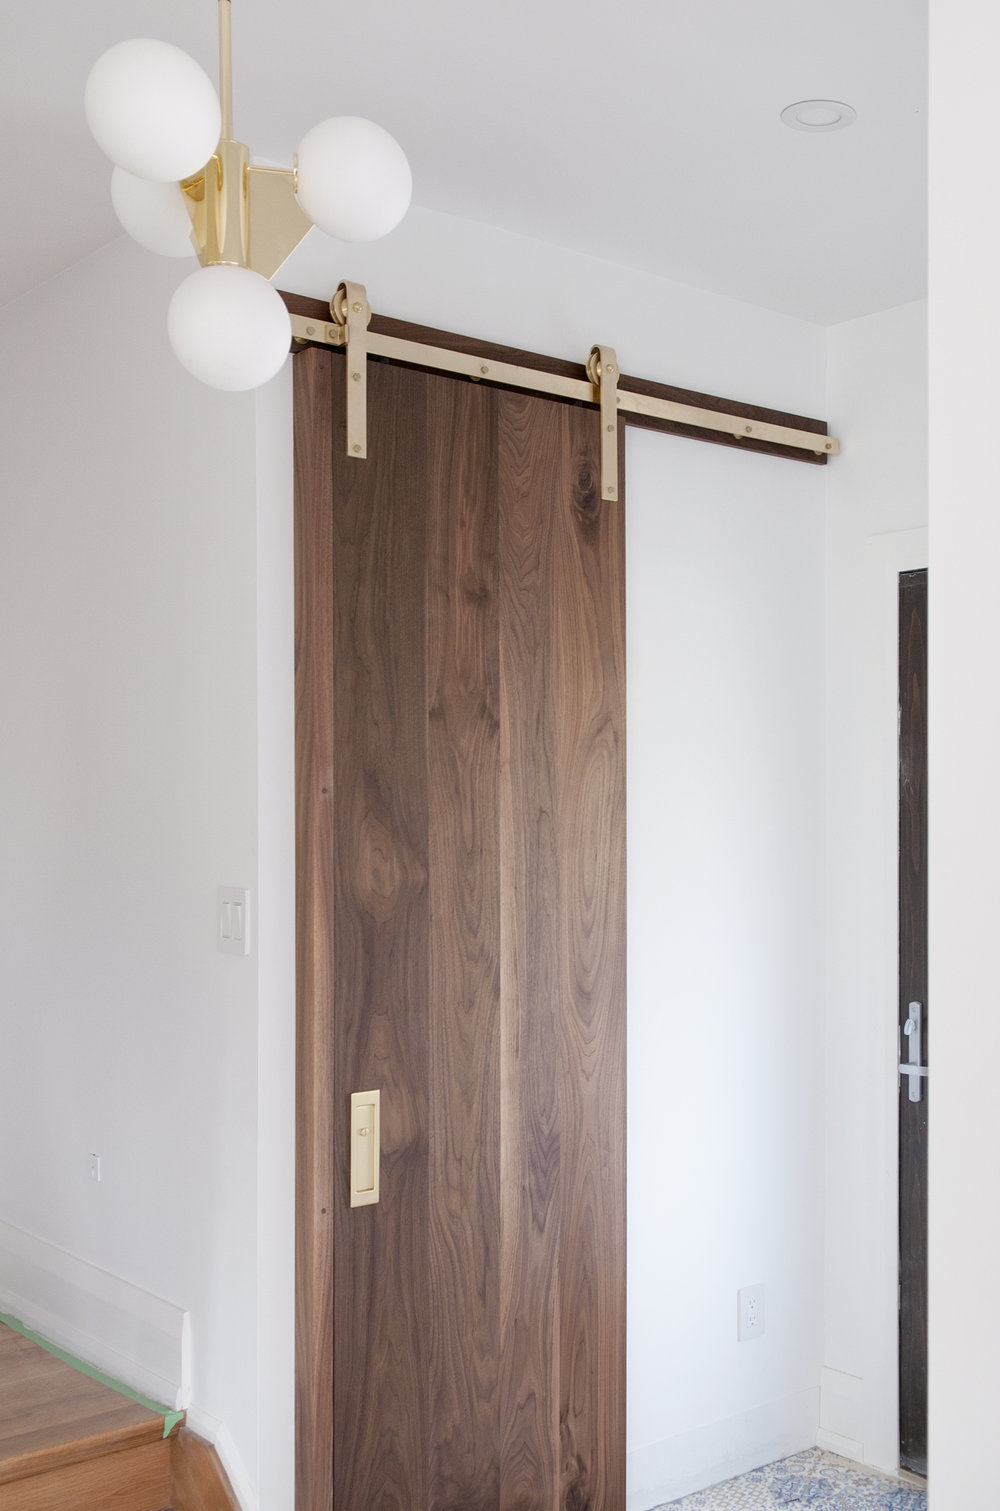 Solid walnut vertical planks